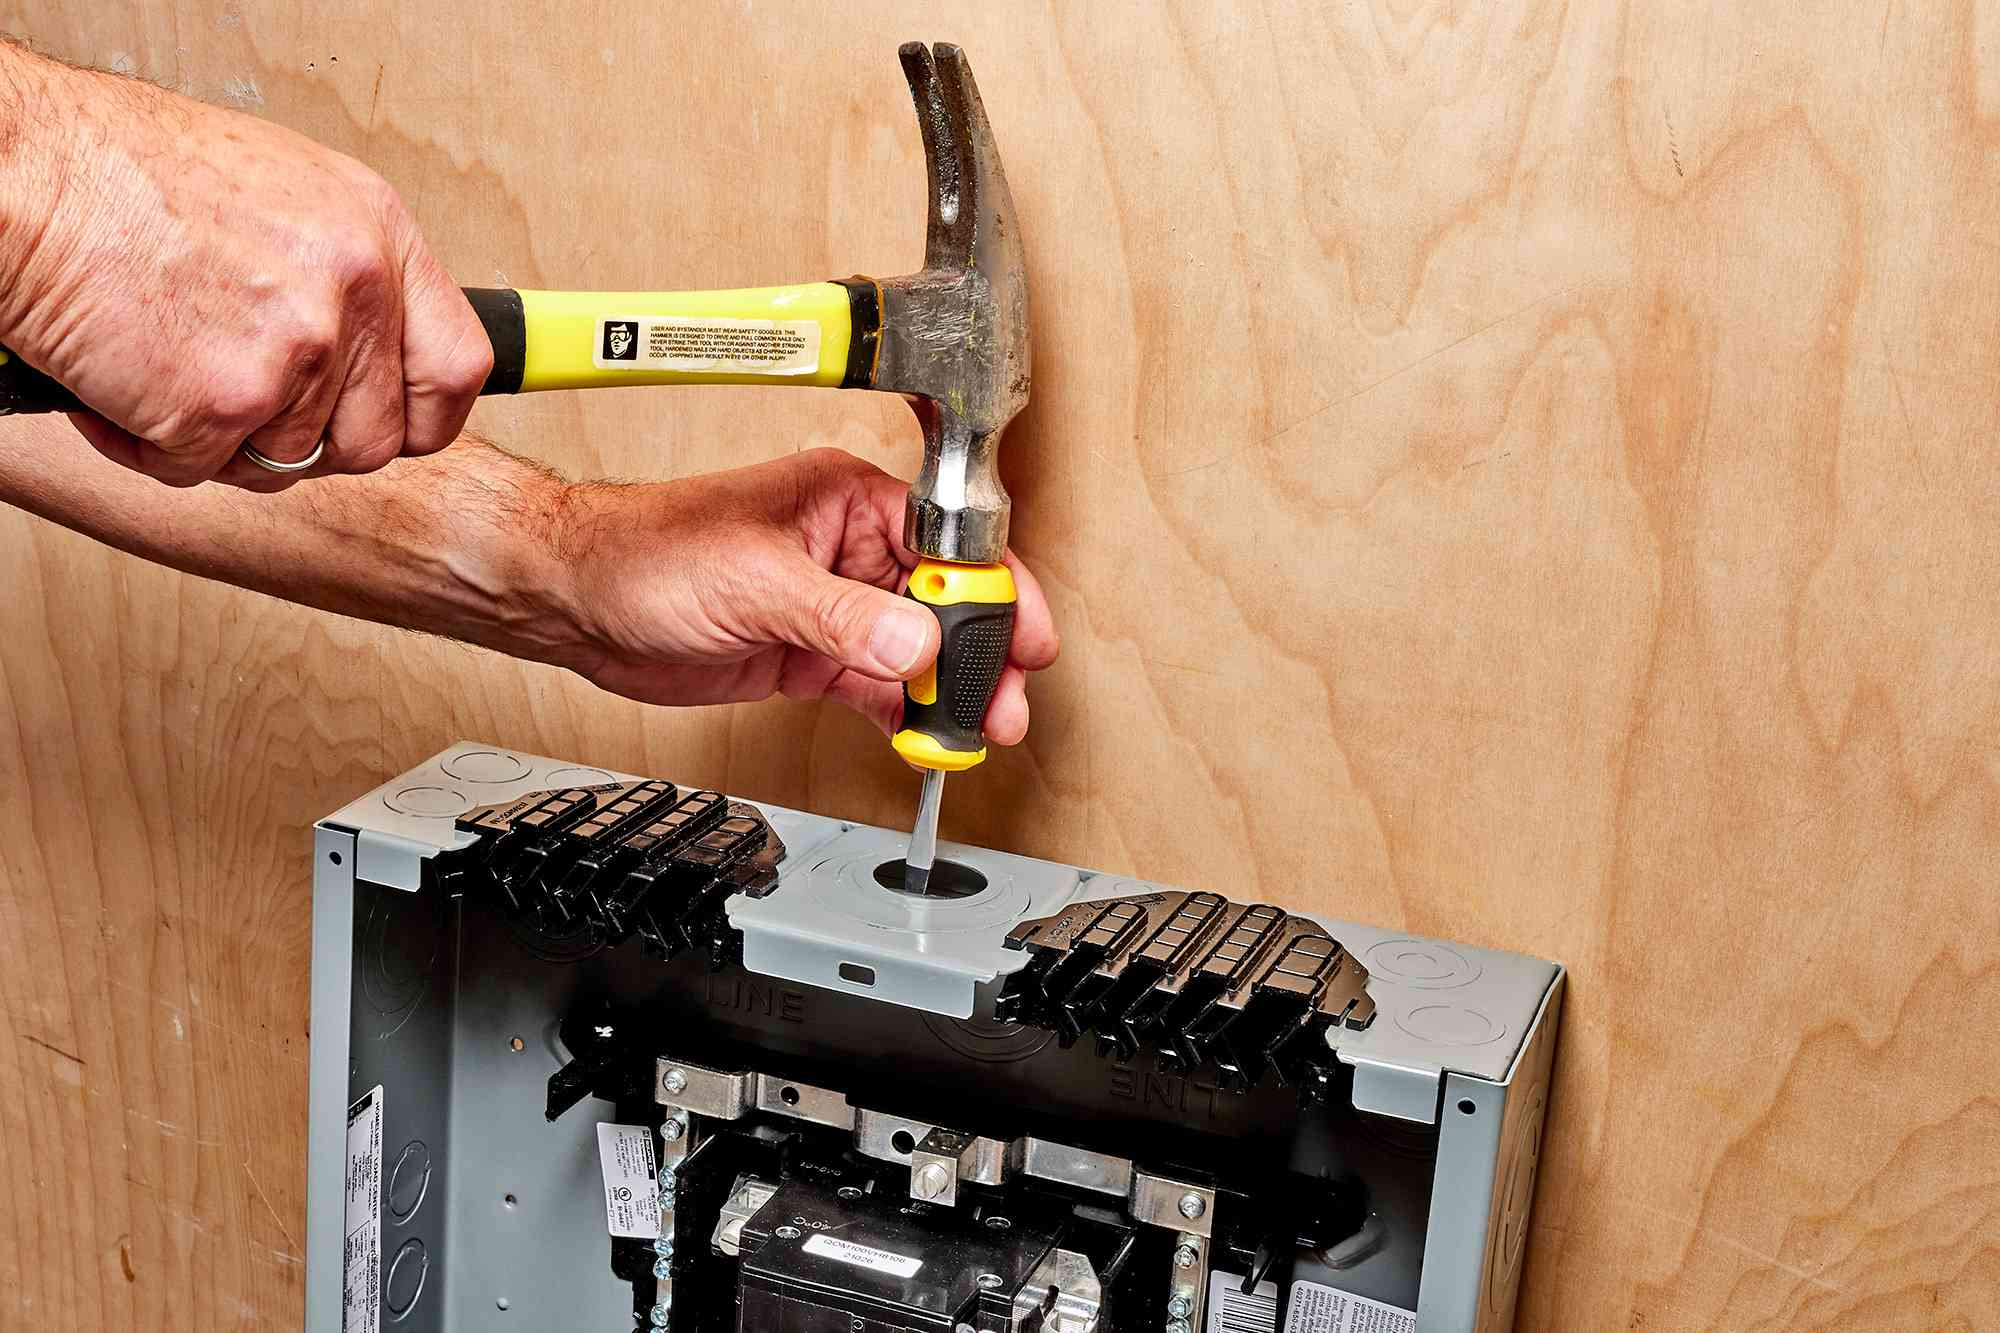 Hammer tapping opening metal knockout on top of electric panel with screwdriver